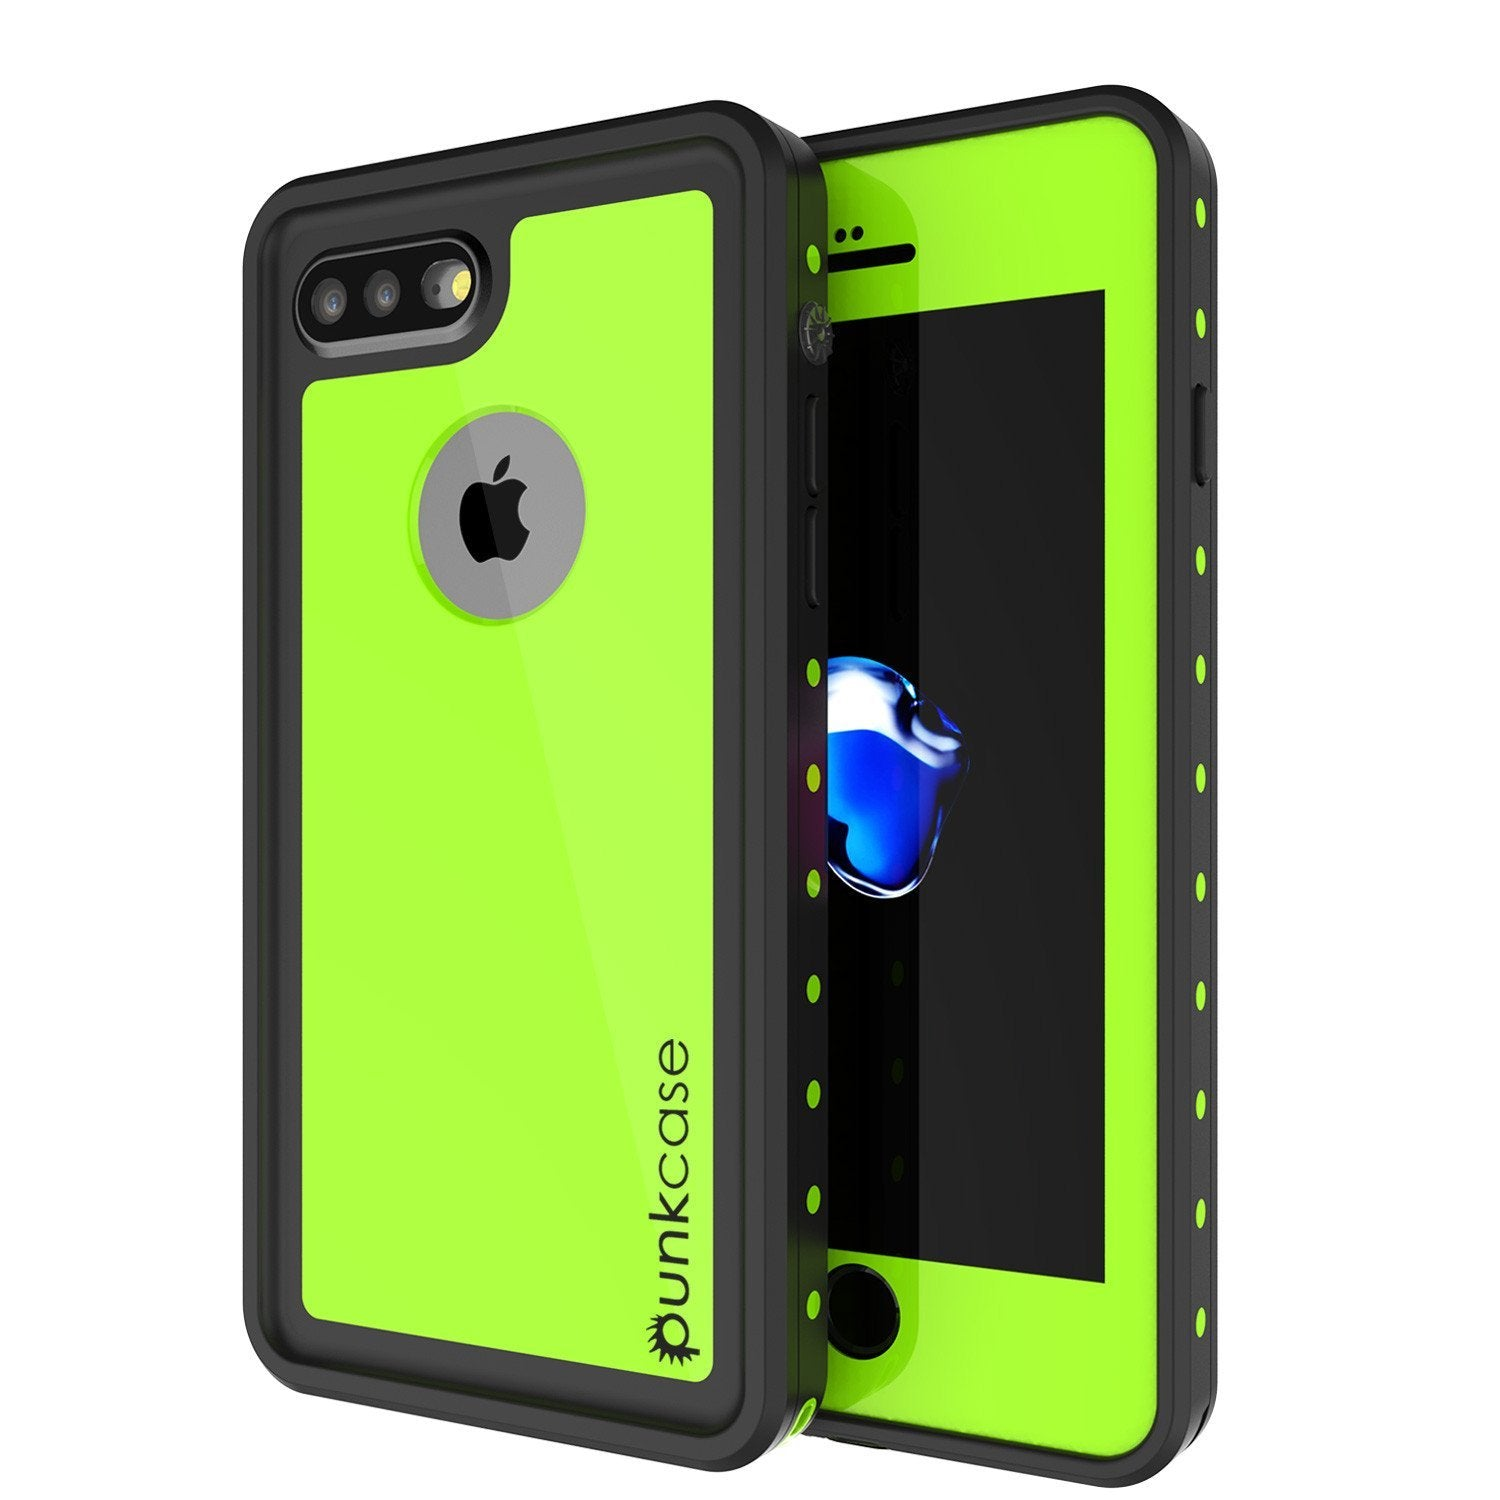 iPhone 8+ Plus Waterproof IP68 Case, Punkcase [Light Green] [StudStar Series] [Slim Fit] [Dirtproof]